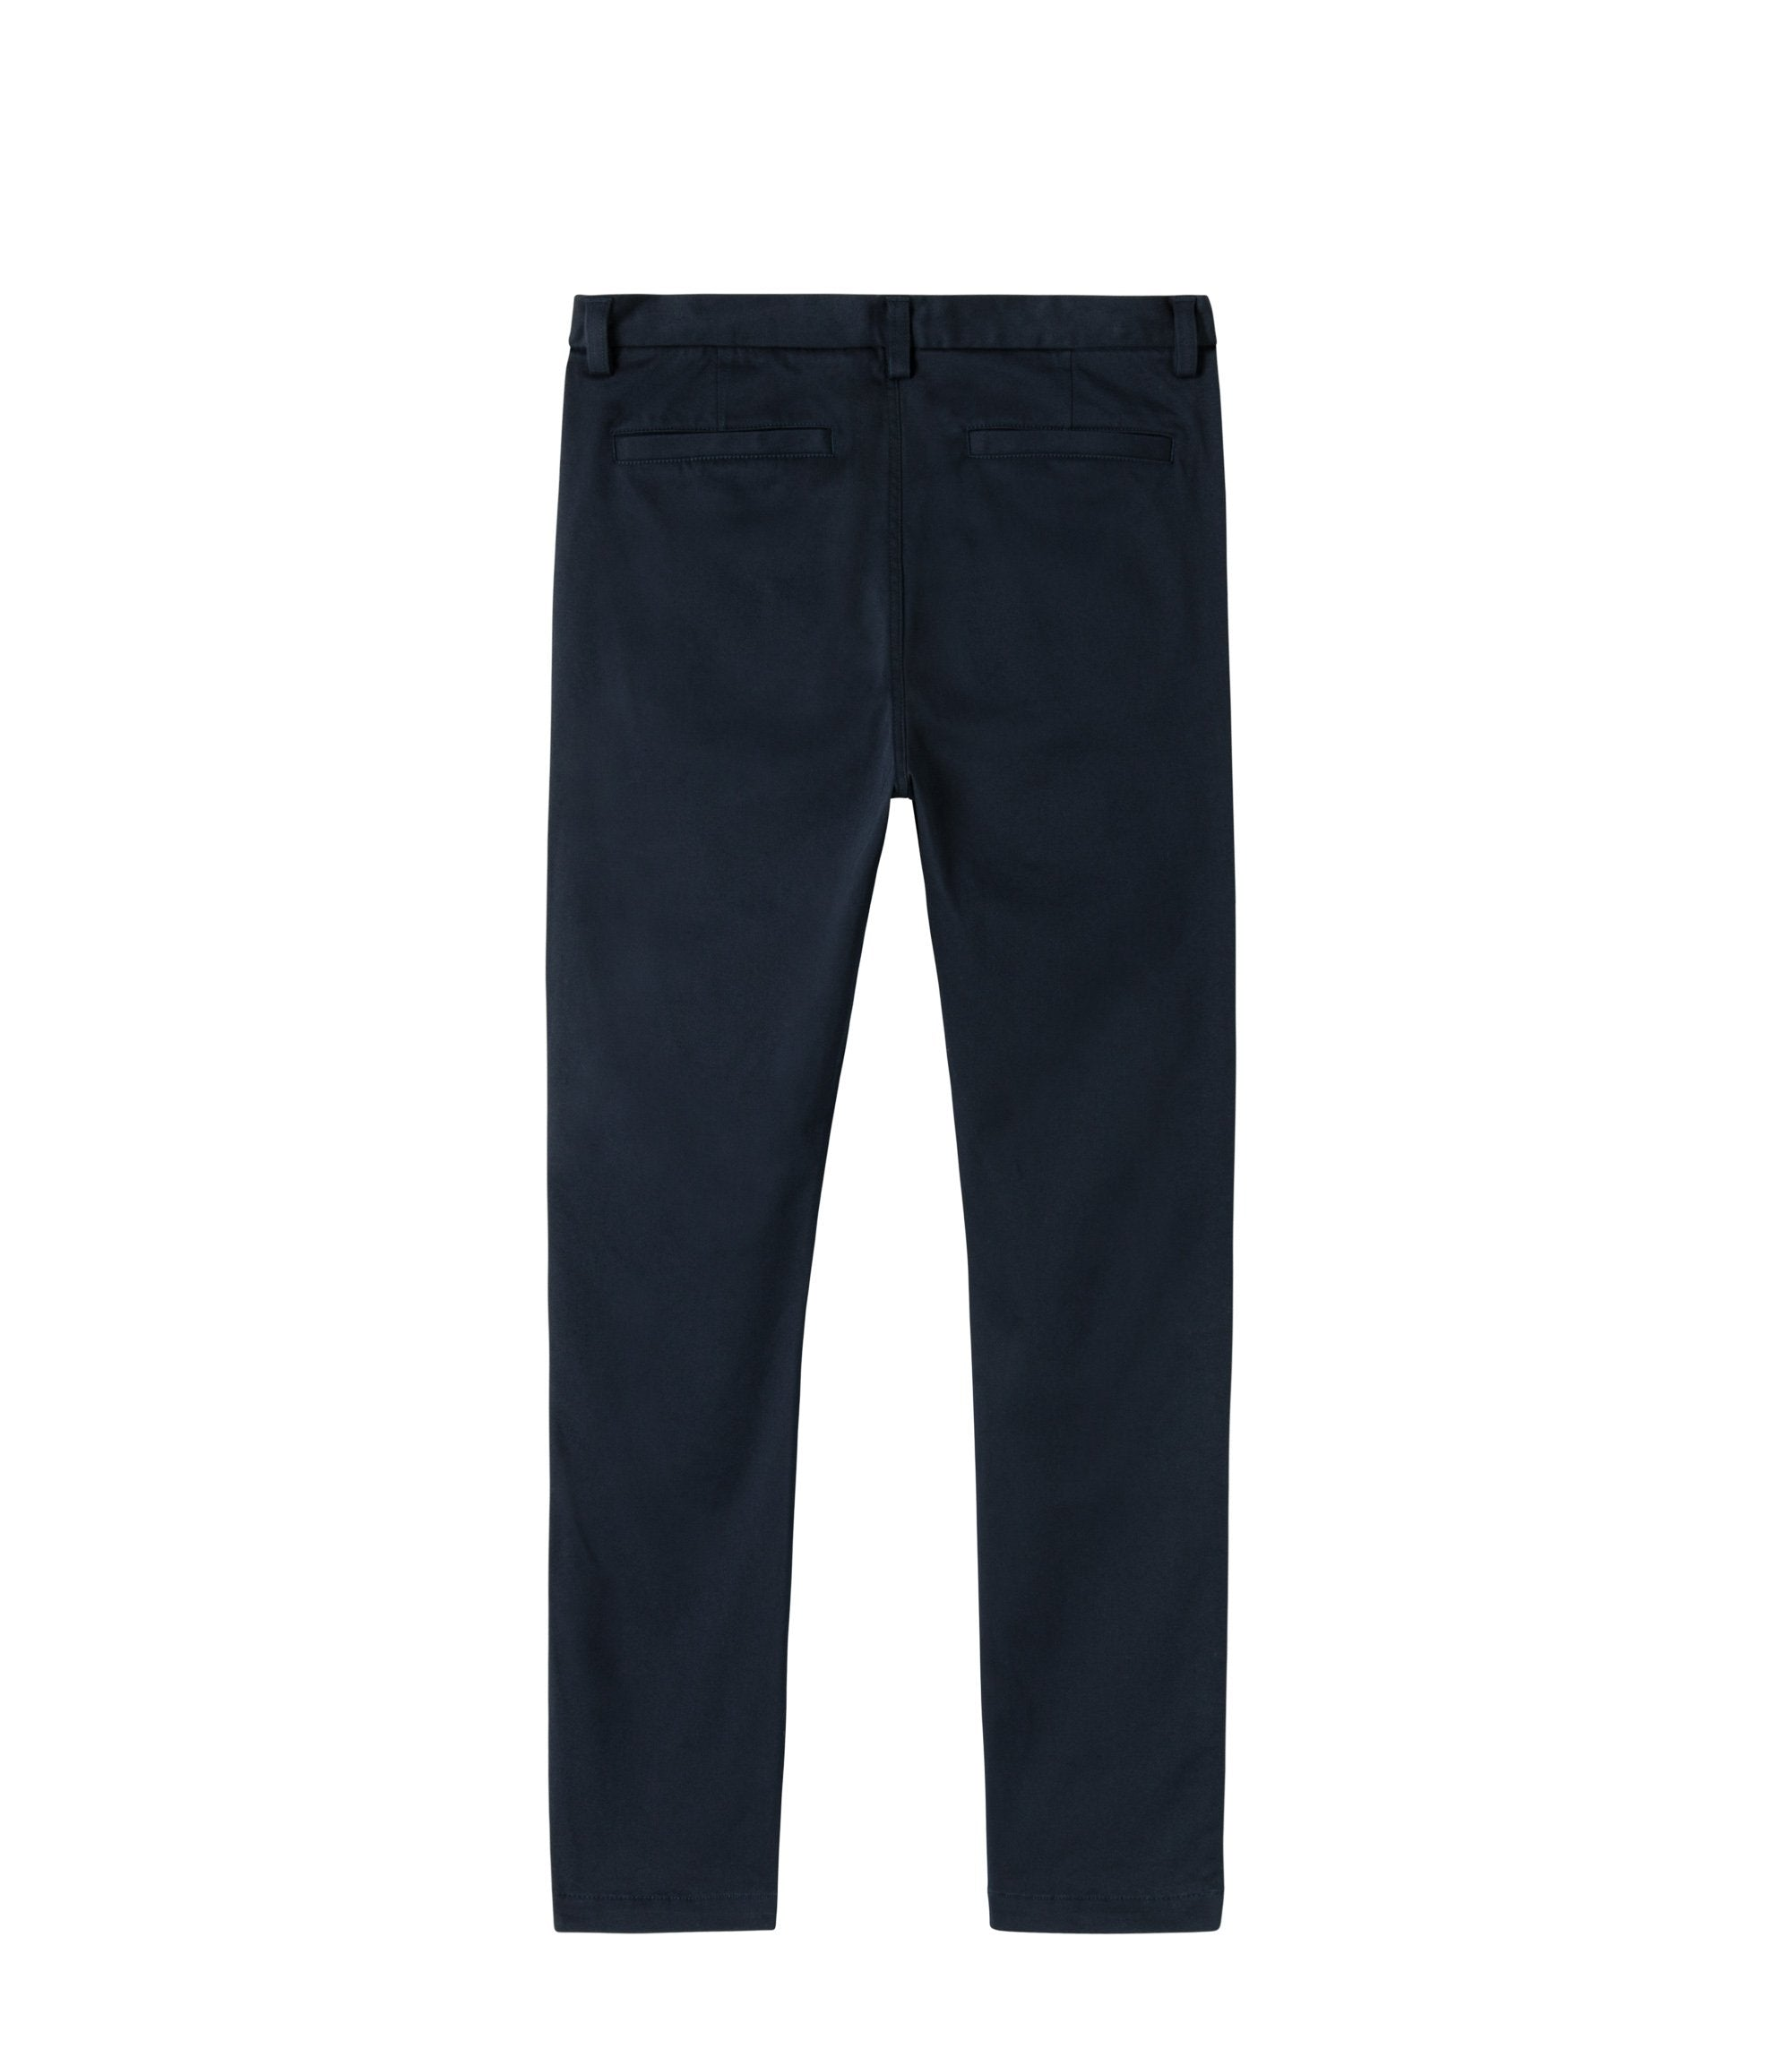 WINGS + HORNS M'S PANTS CADET PANT